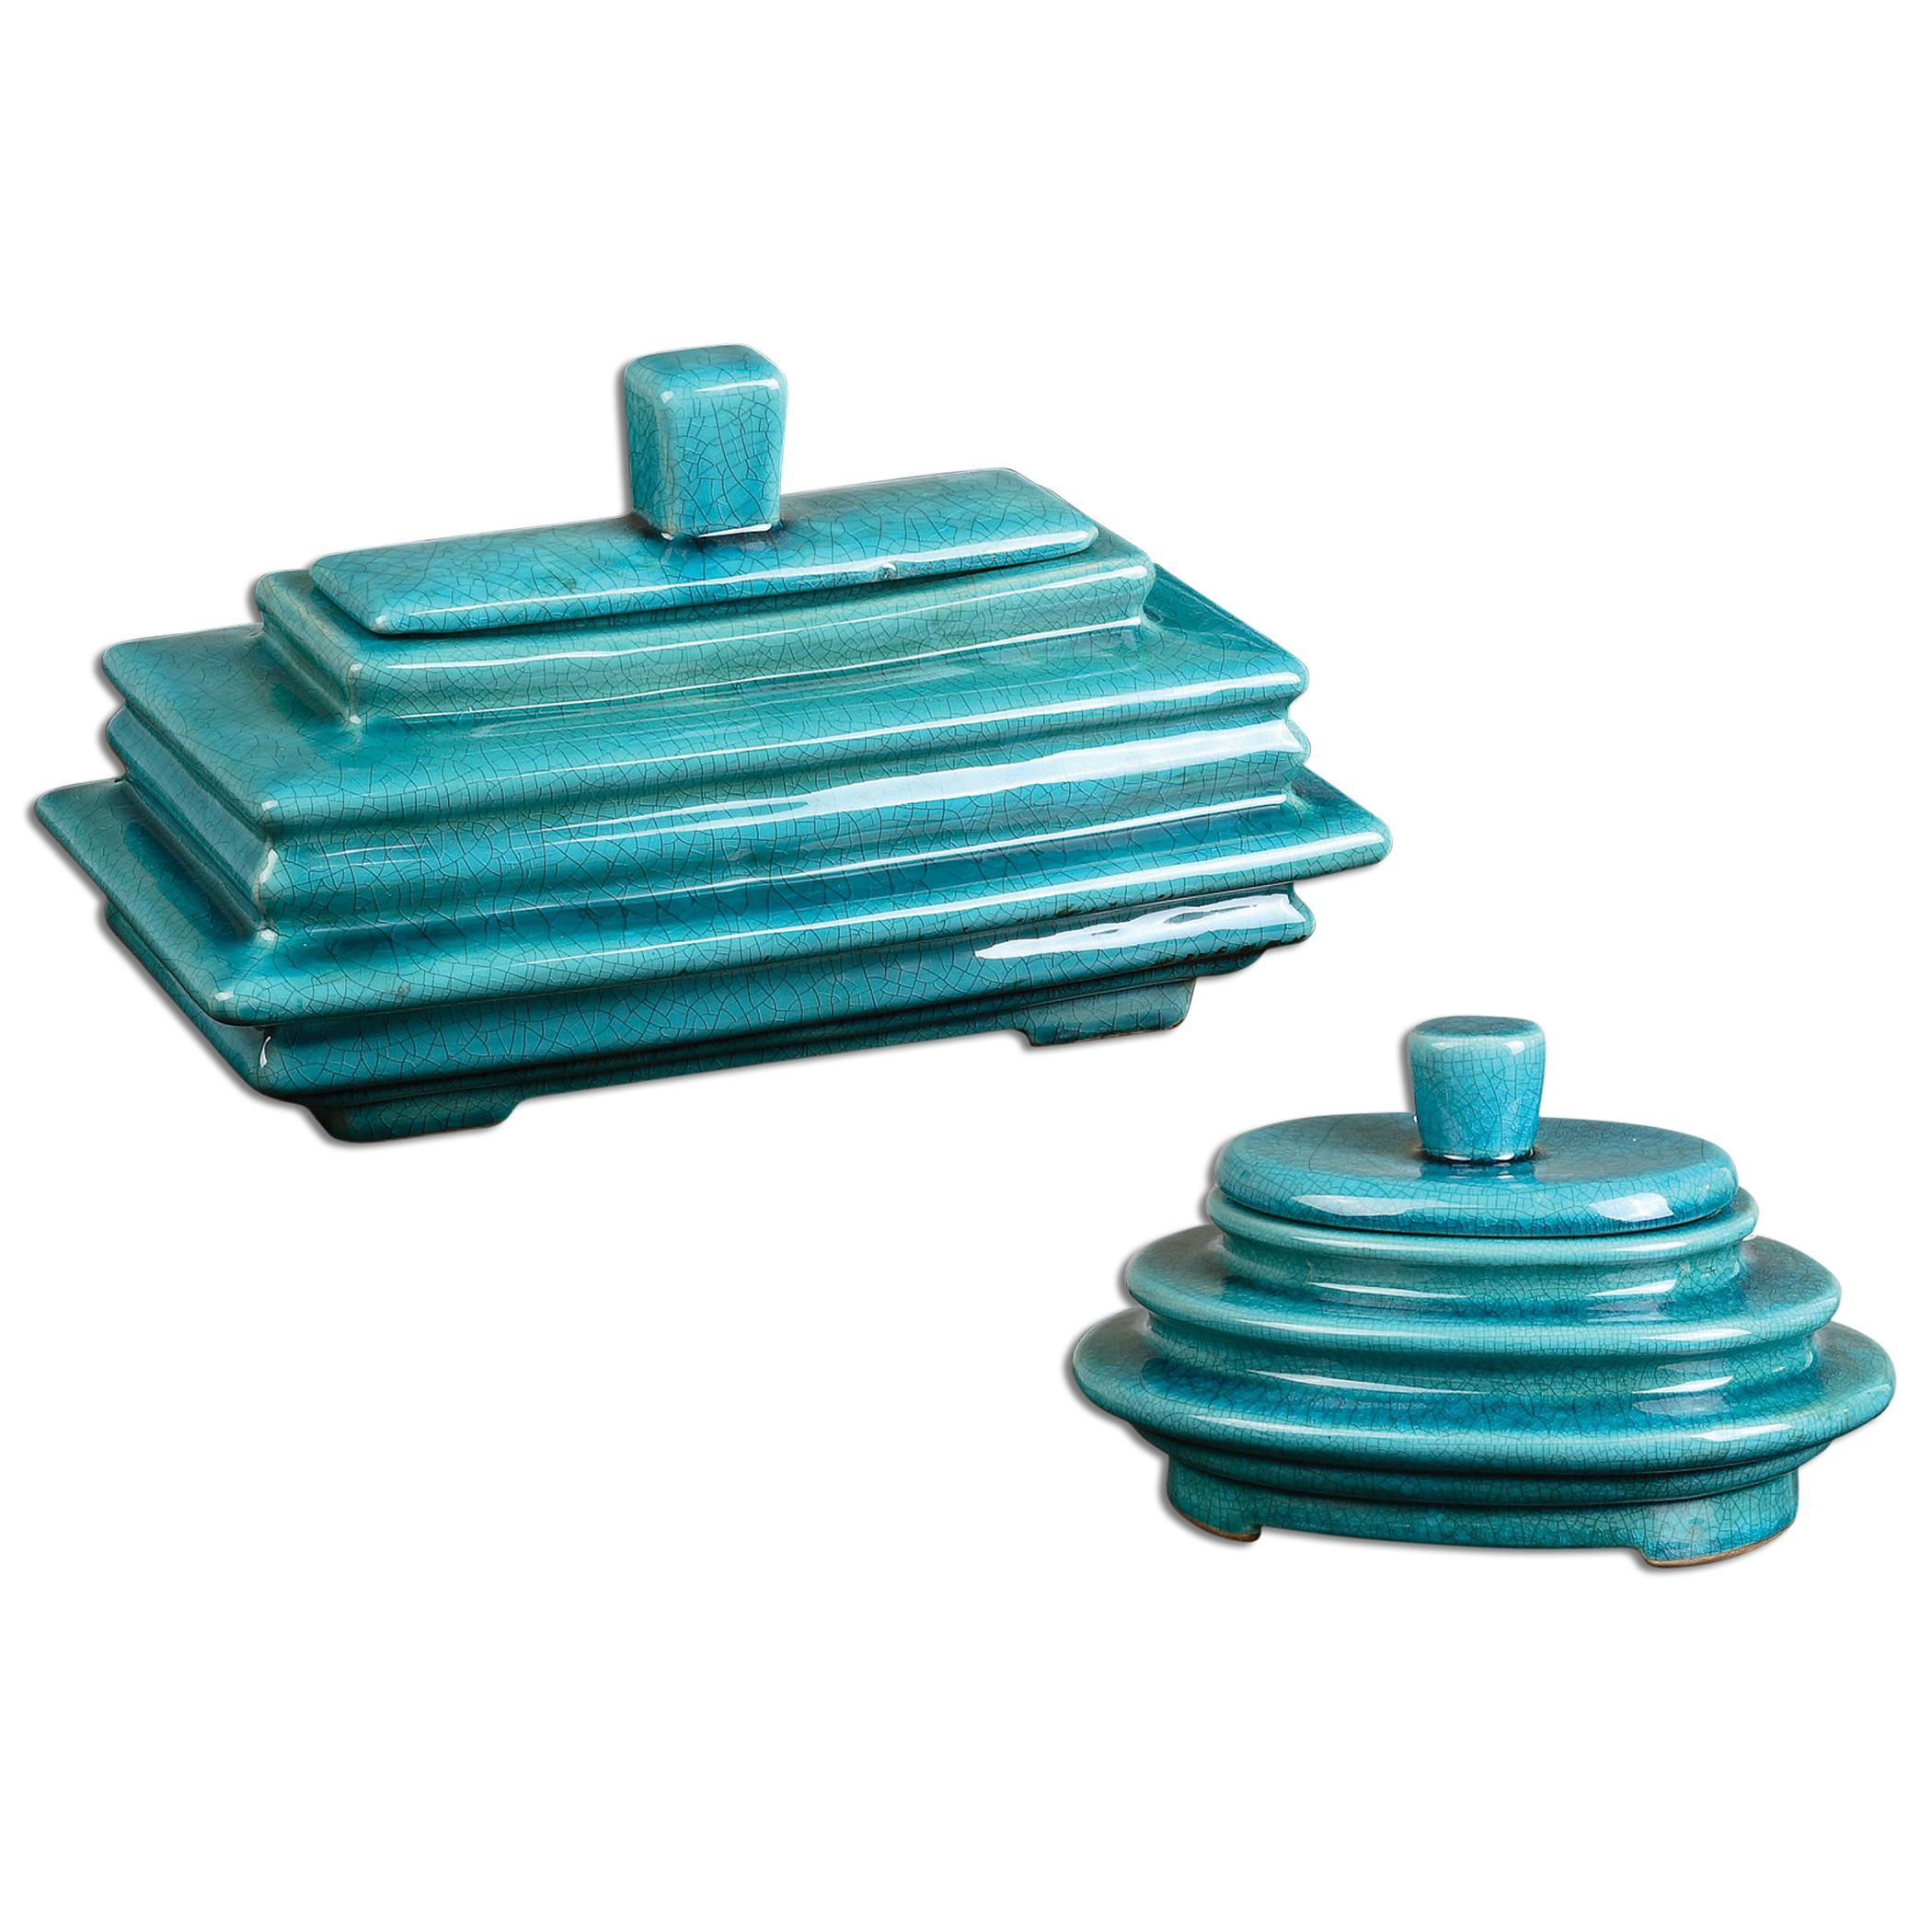 Uttermost Accessories Indra Bright Blue Boxes, Set of  2 - Item Number: 19836